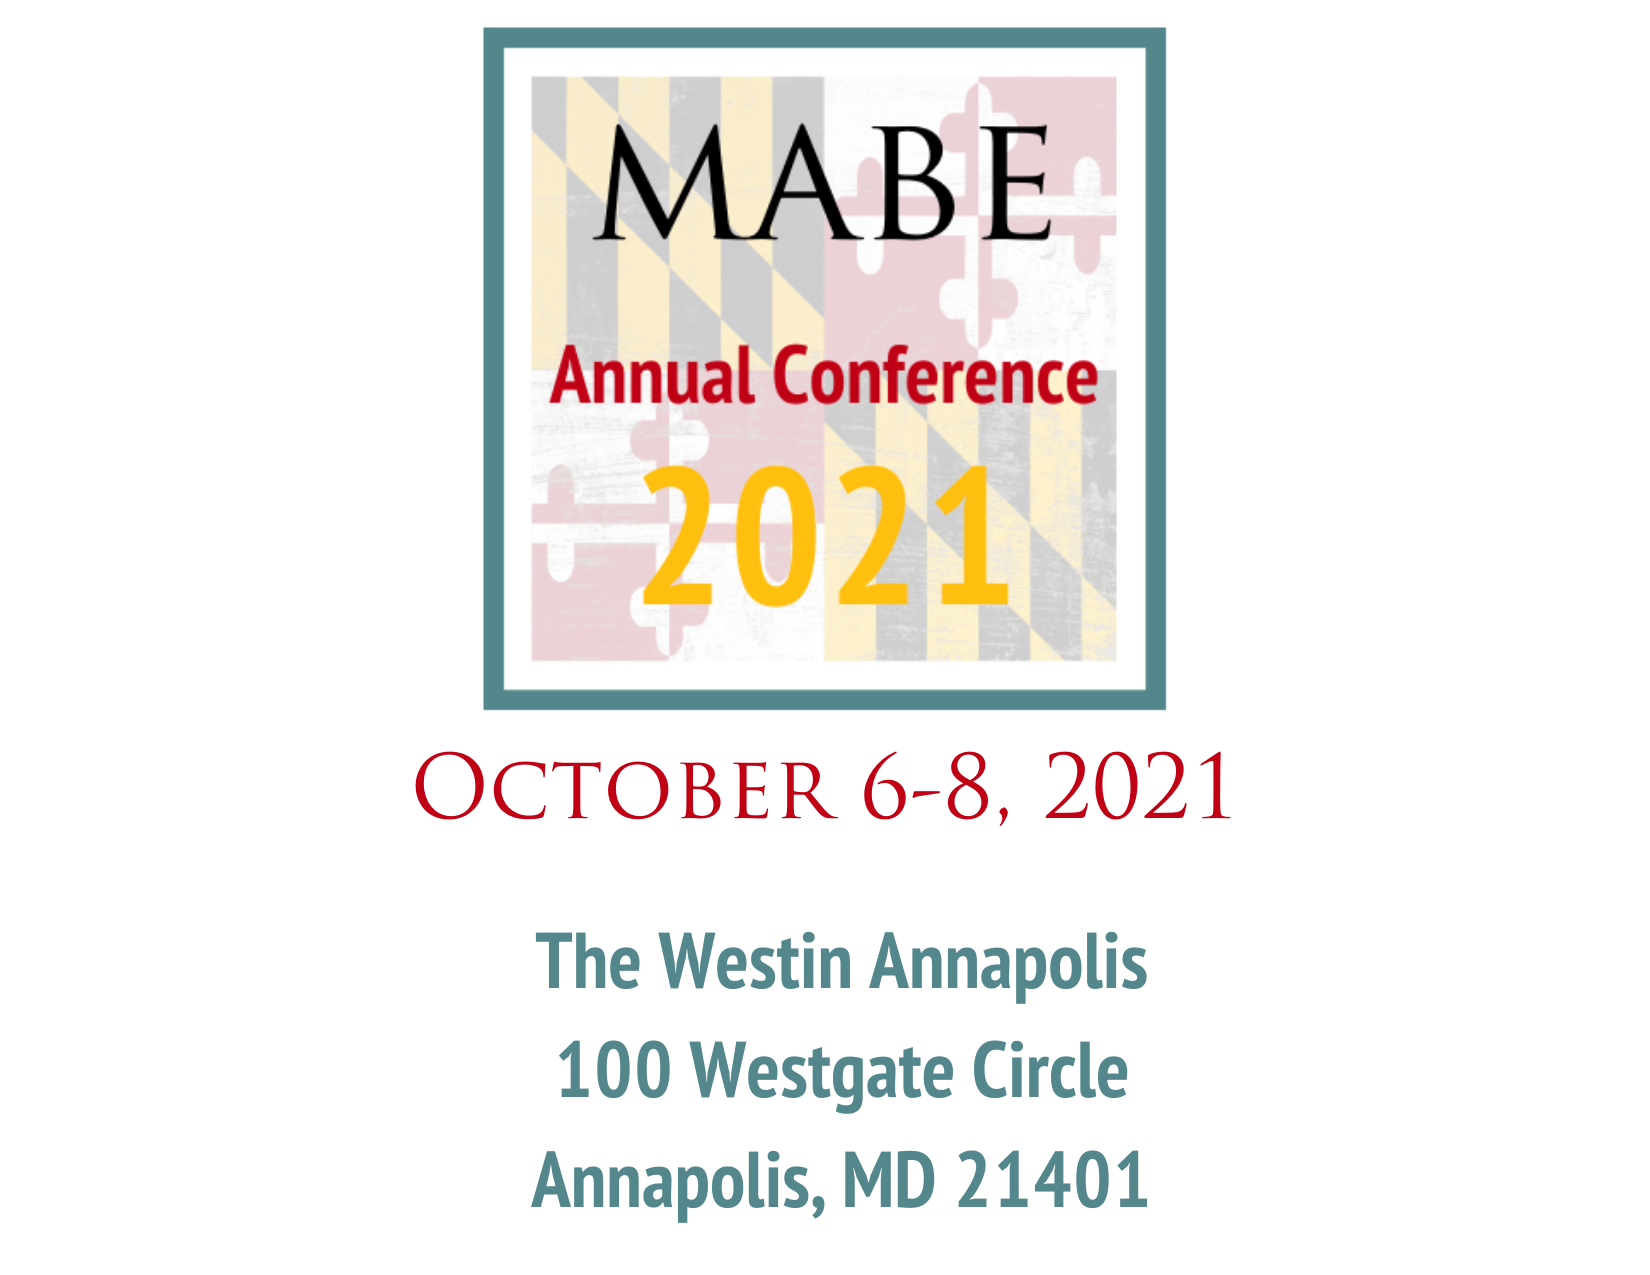 Annoucement for MABE 2021 Annual Conference, October 6-8, 2021, the Westin Annapolis, 100 Westgate Cirlce, Annapolis, MD 21401